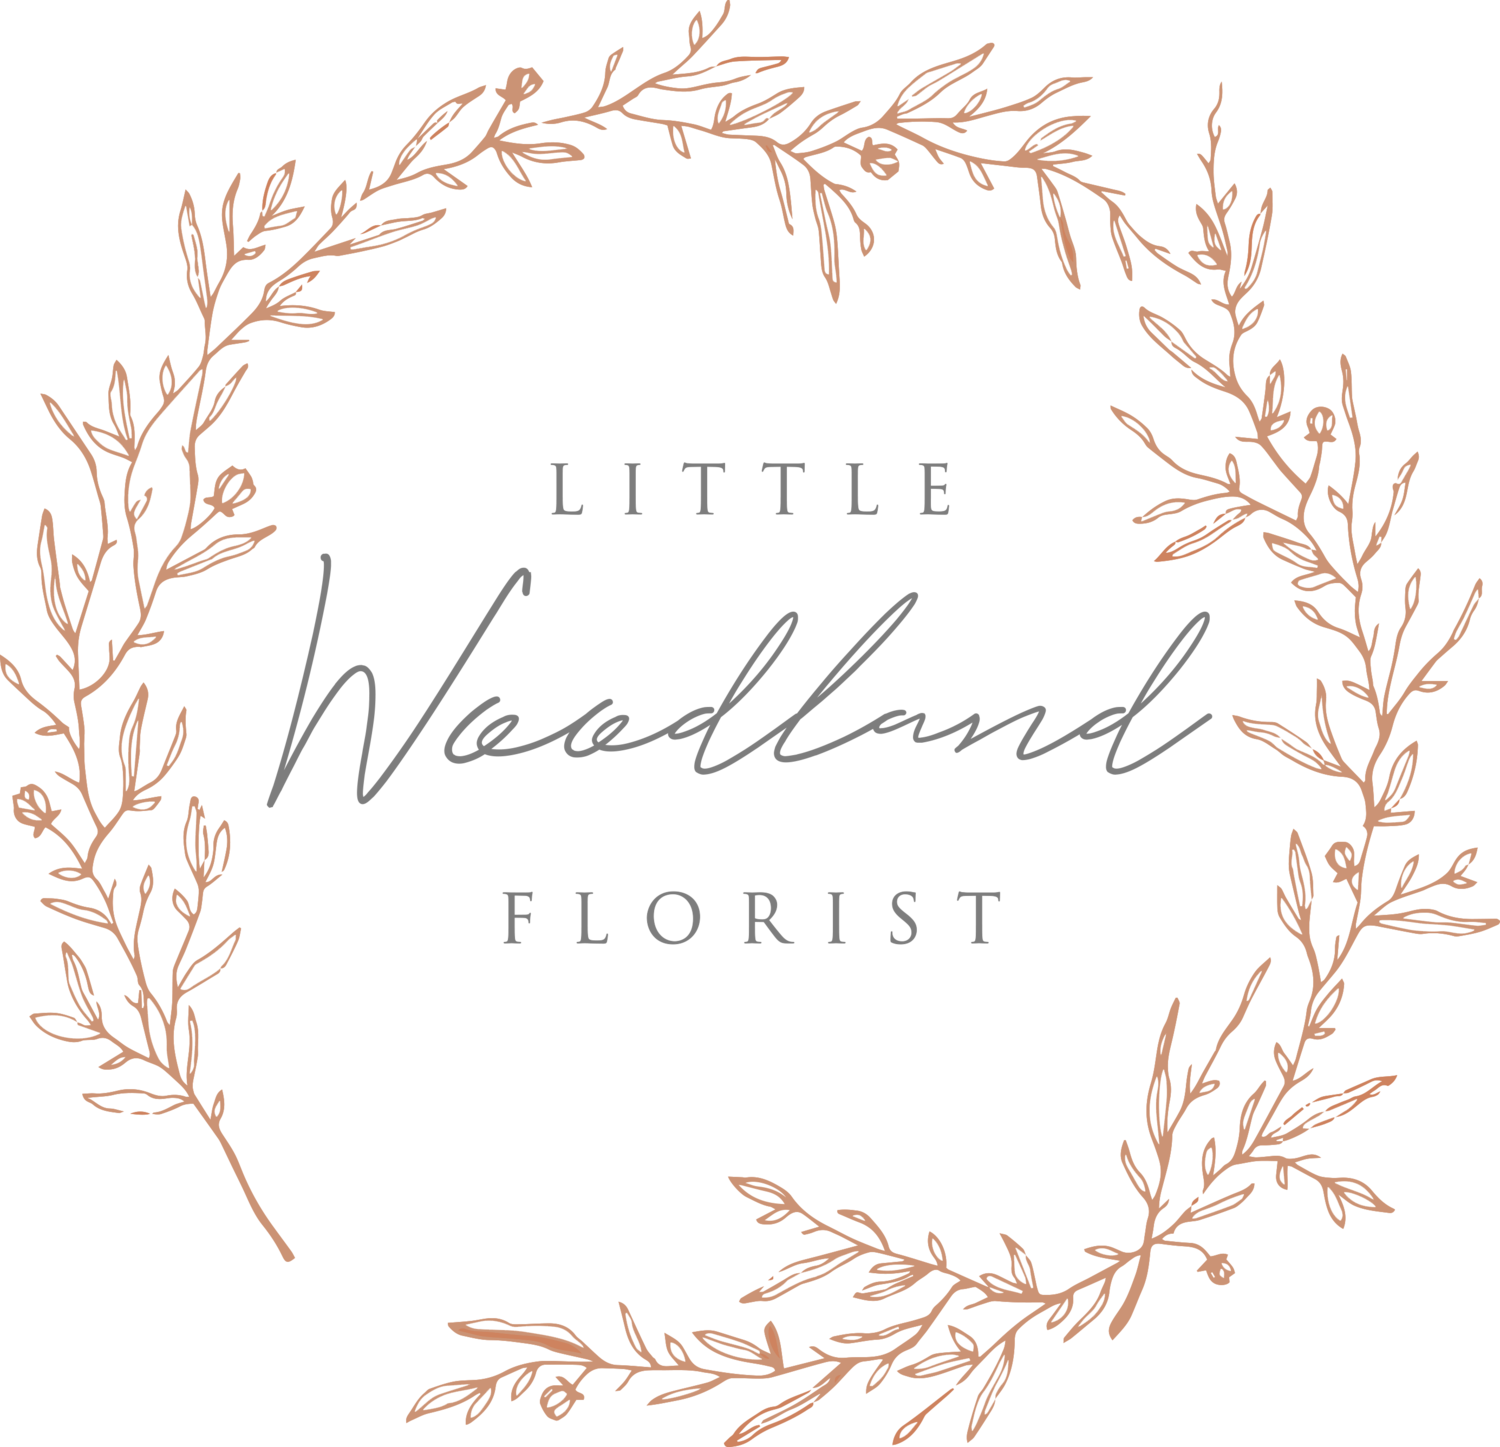 Little Woodland Florist